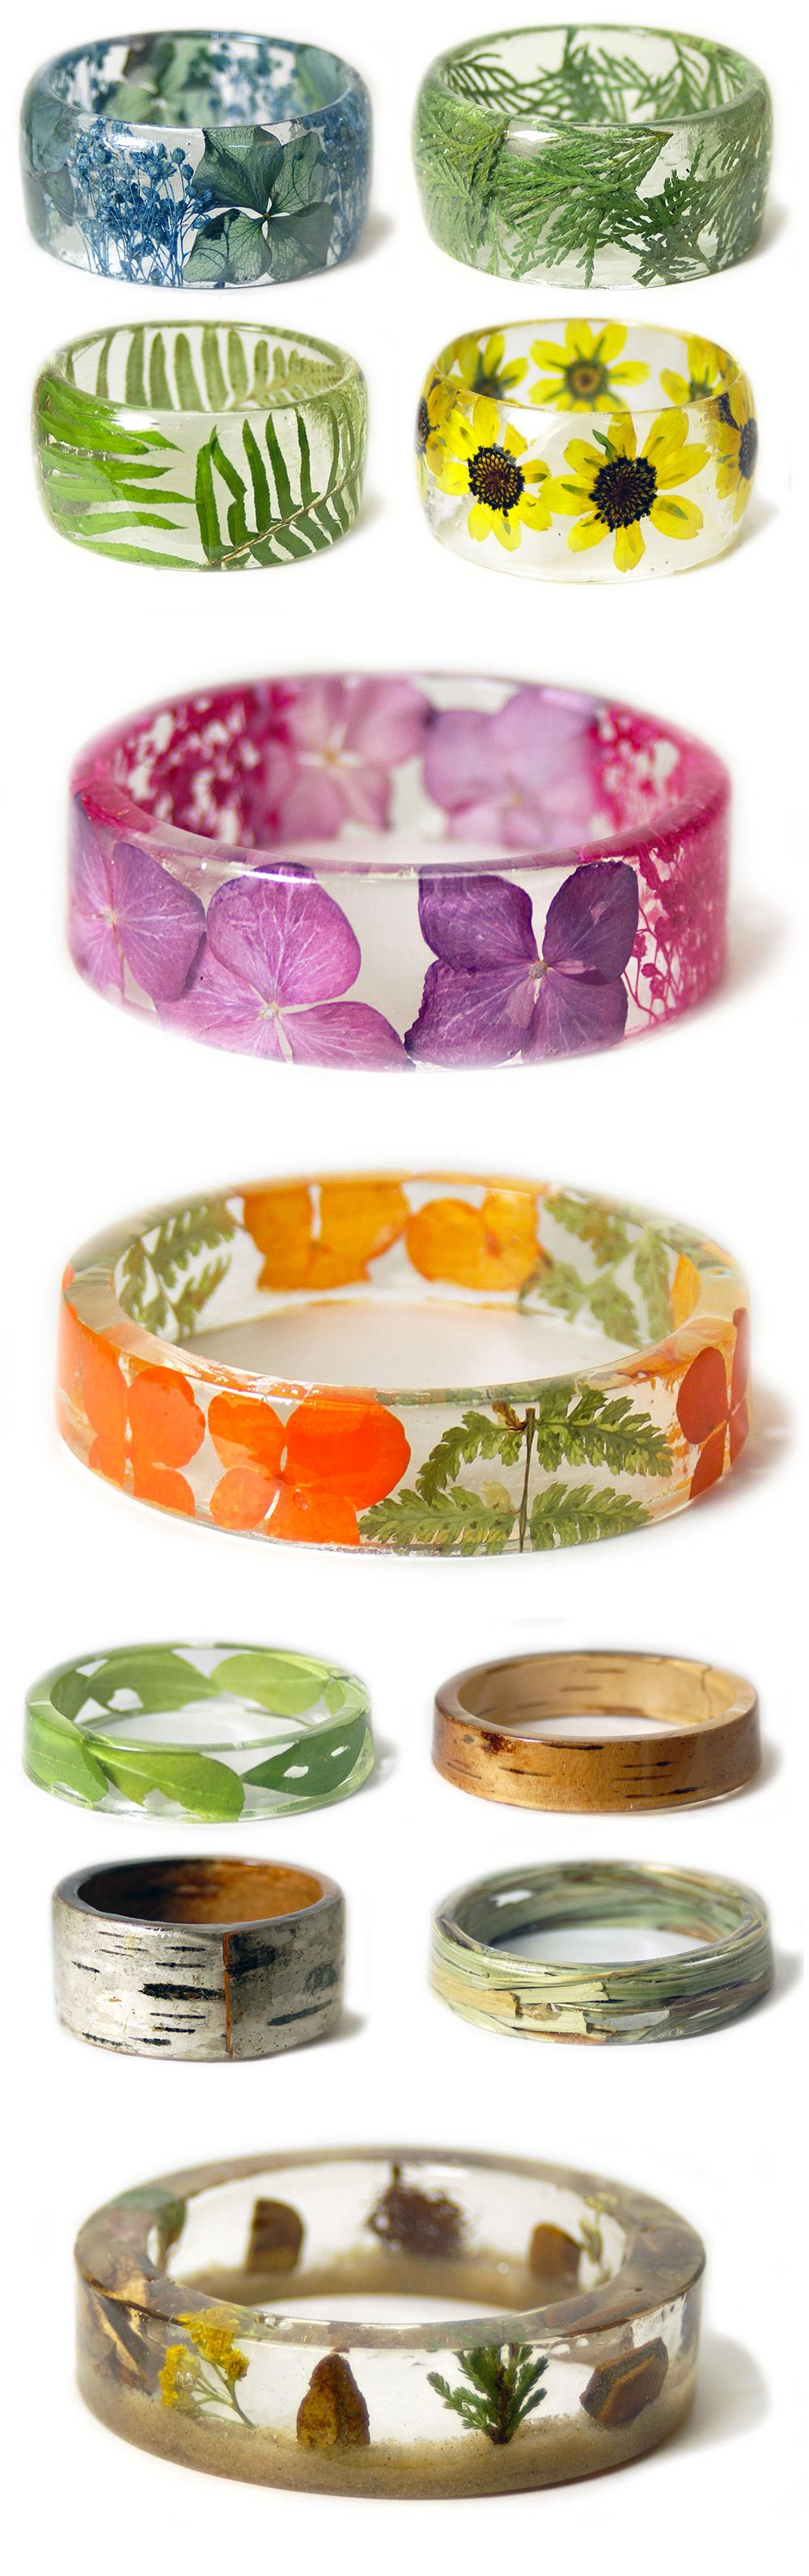 Resin for arts and crafts - New Handmade Resin Bracelets Embedded With Flowers And Plants By Sarah Smith